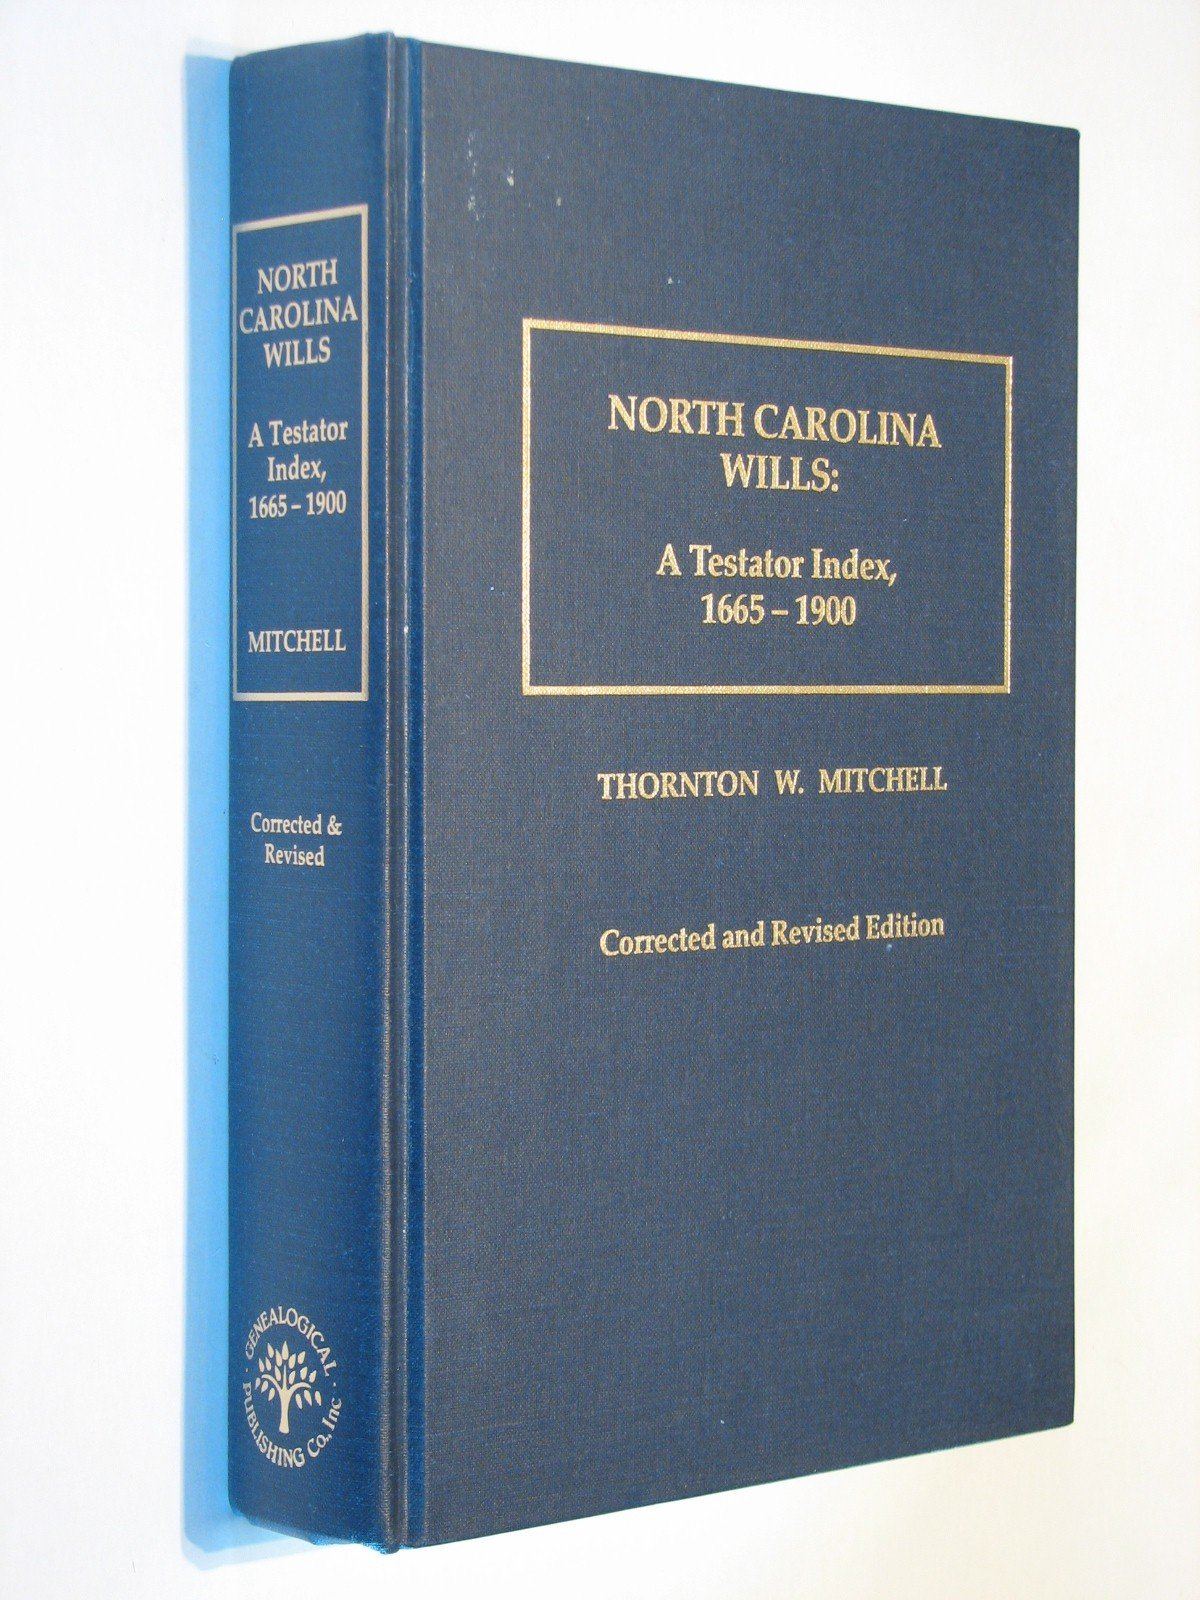 NORTH CAROLINA WILLS A Testator Index, 1665-1900 Hardcover – 1992